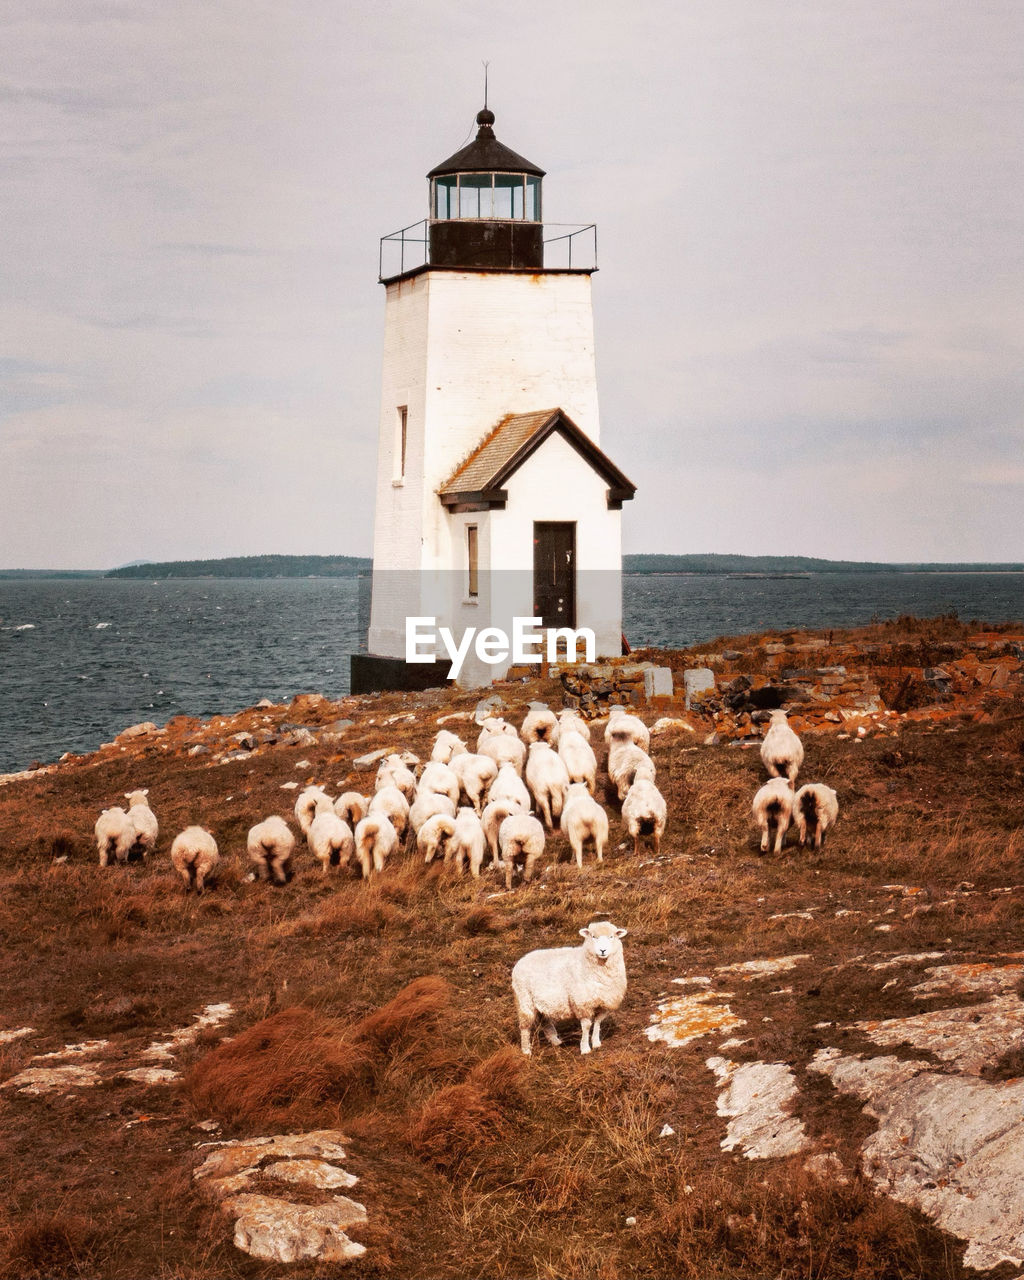 Nash island light with sheep in maine